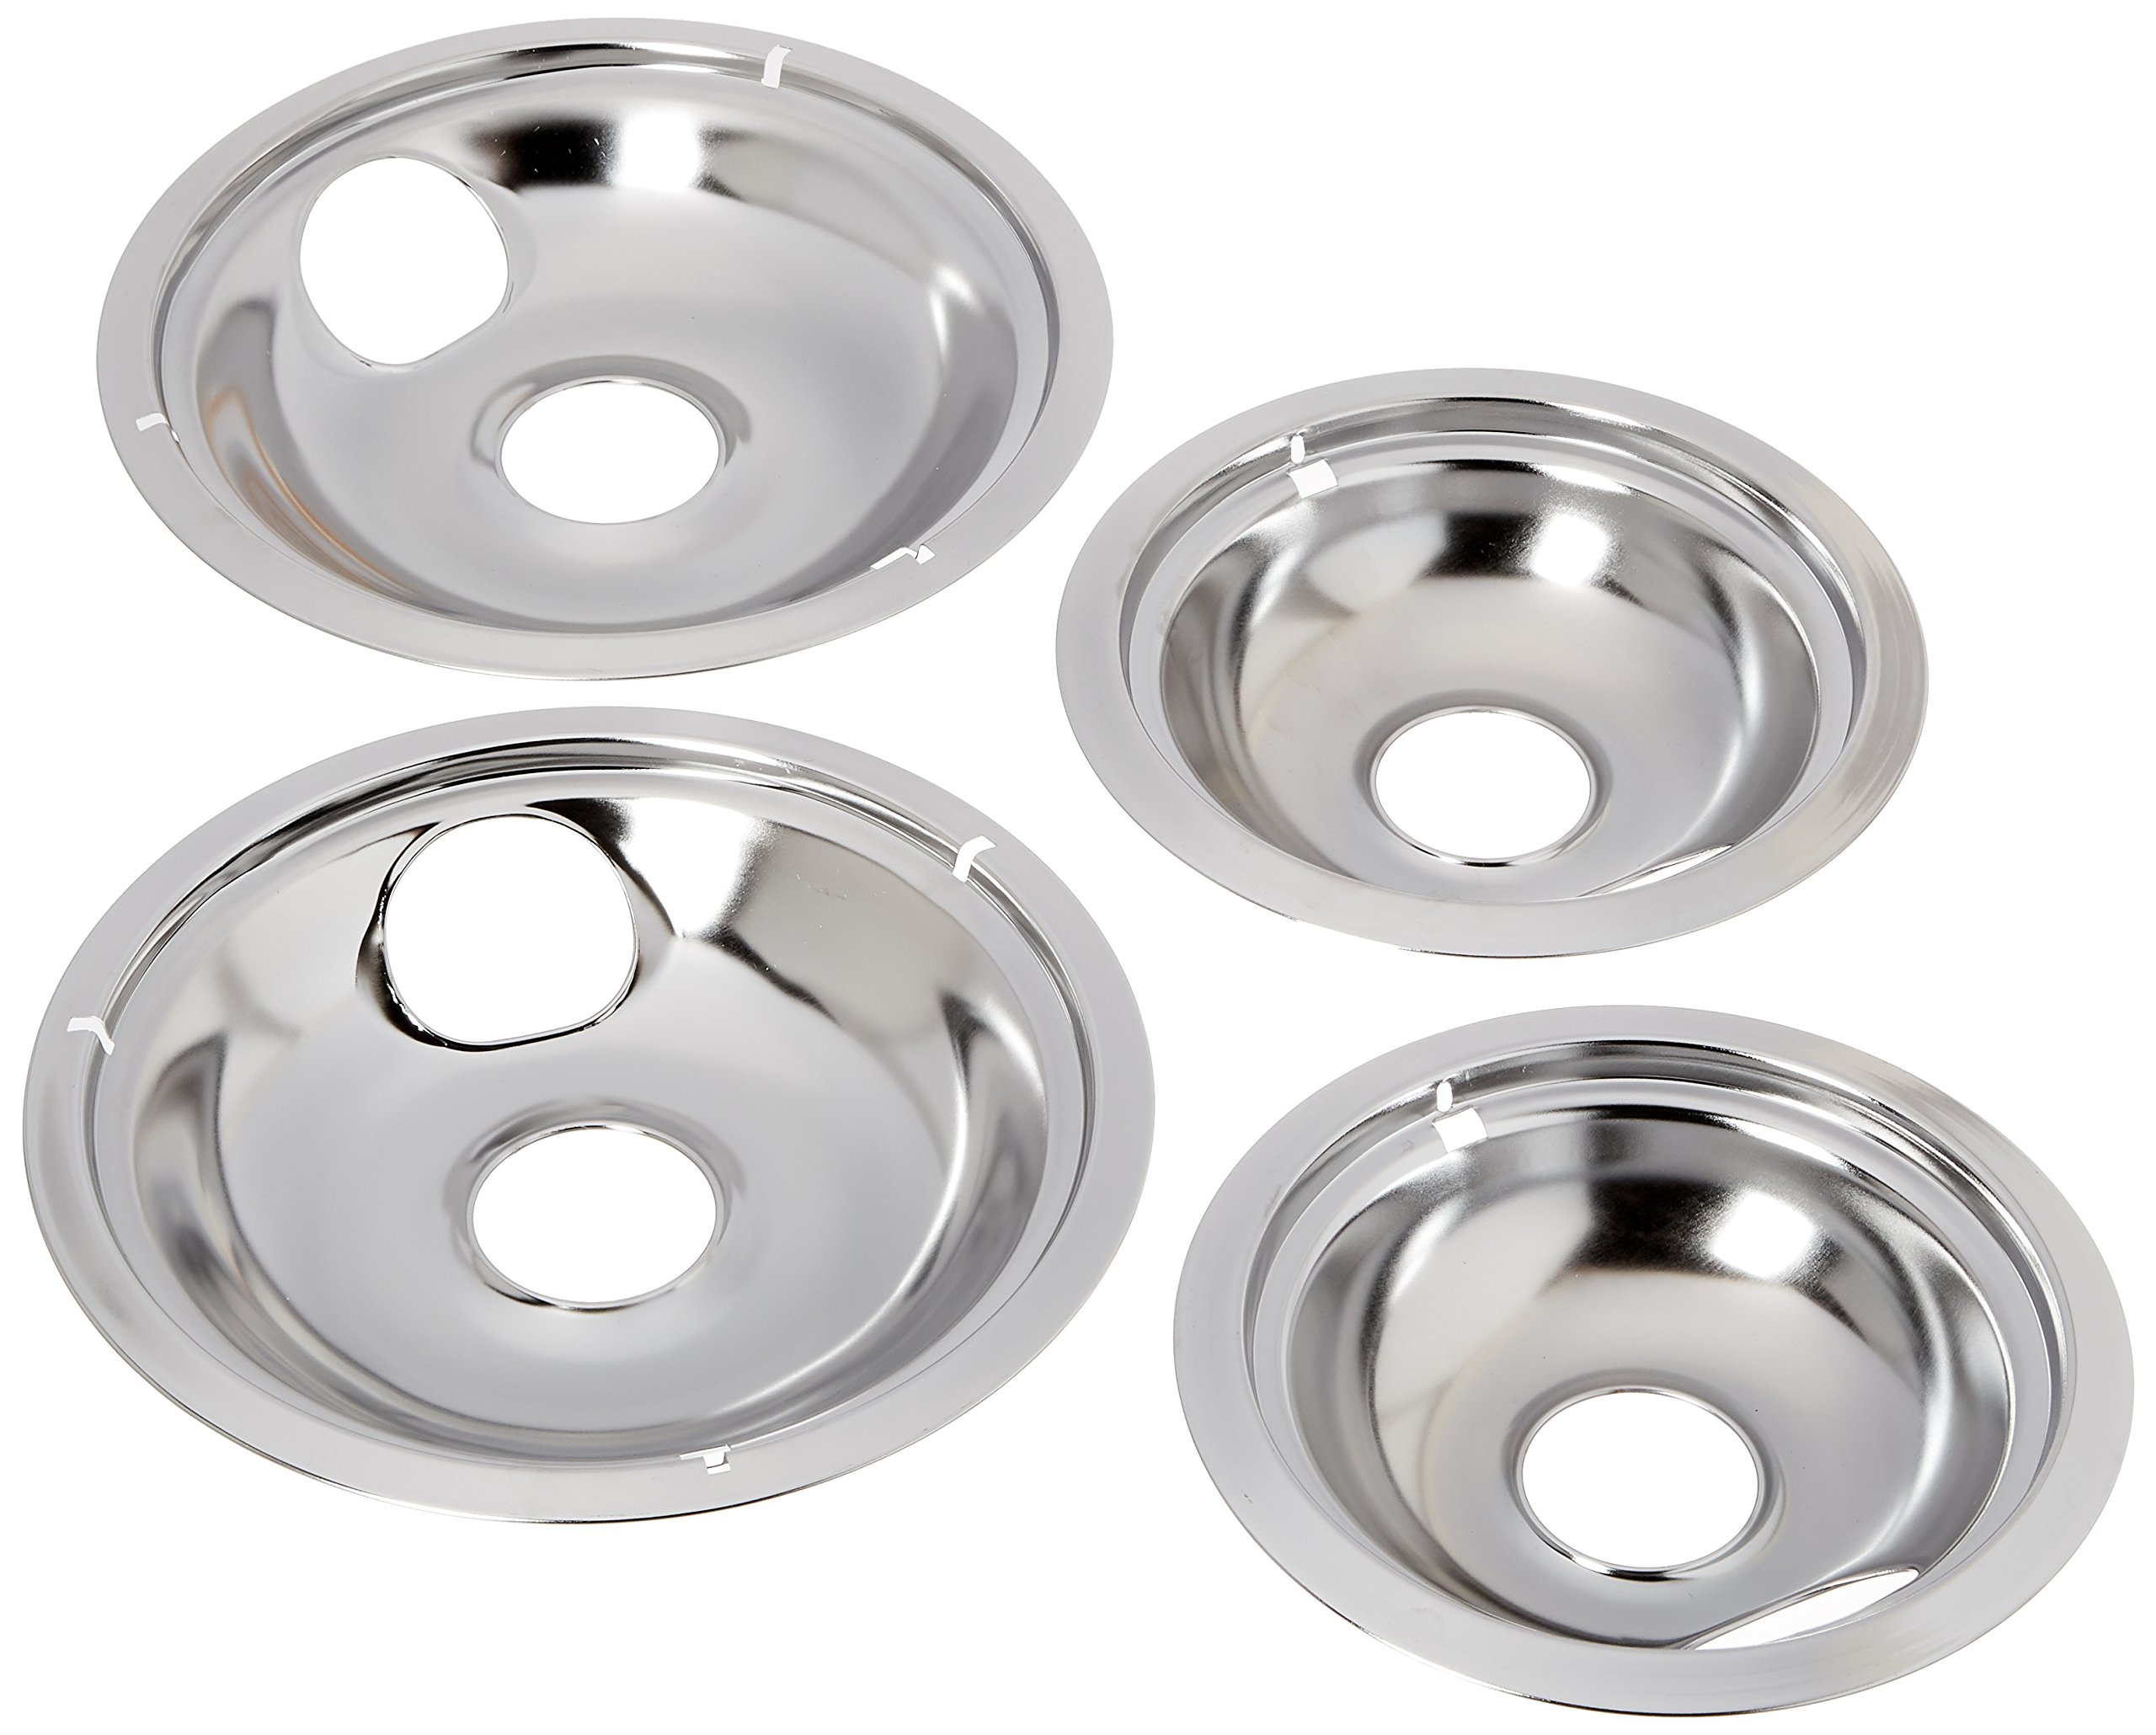 Stanco 4 Pack Universal Electric Range Chrome Reflector